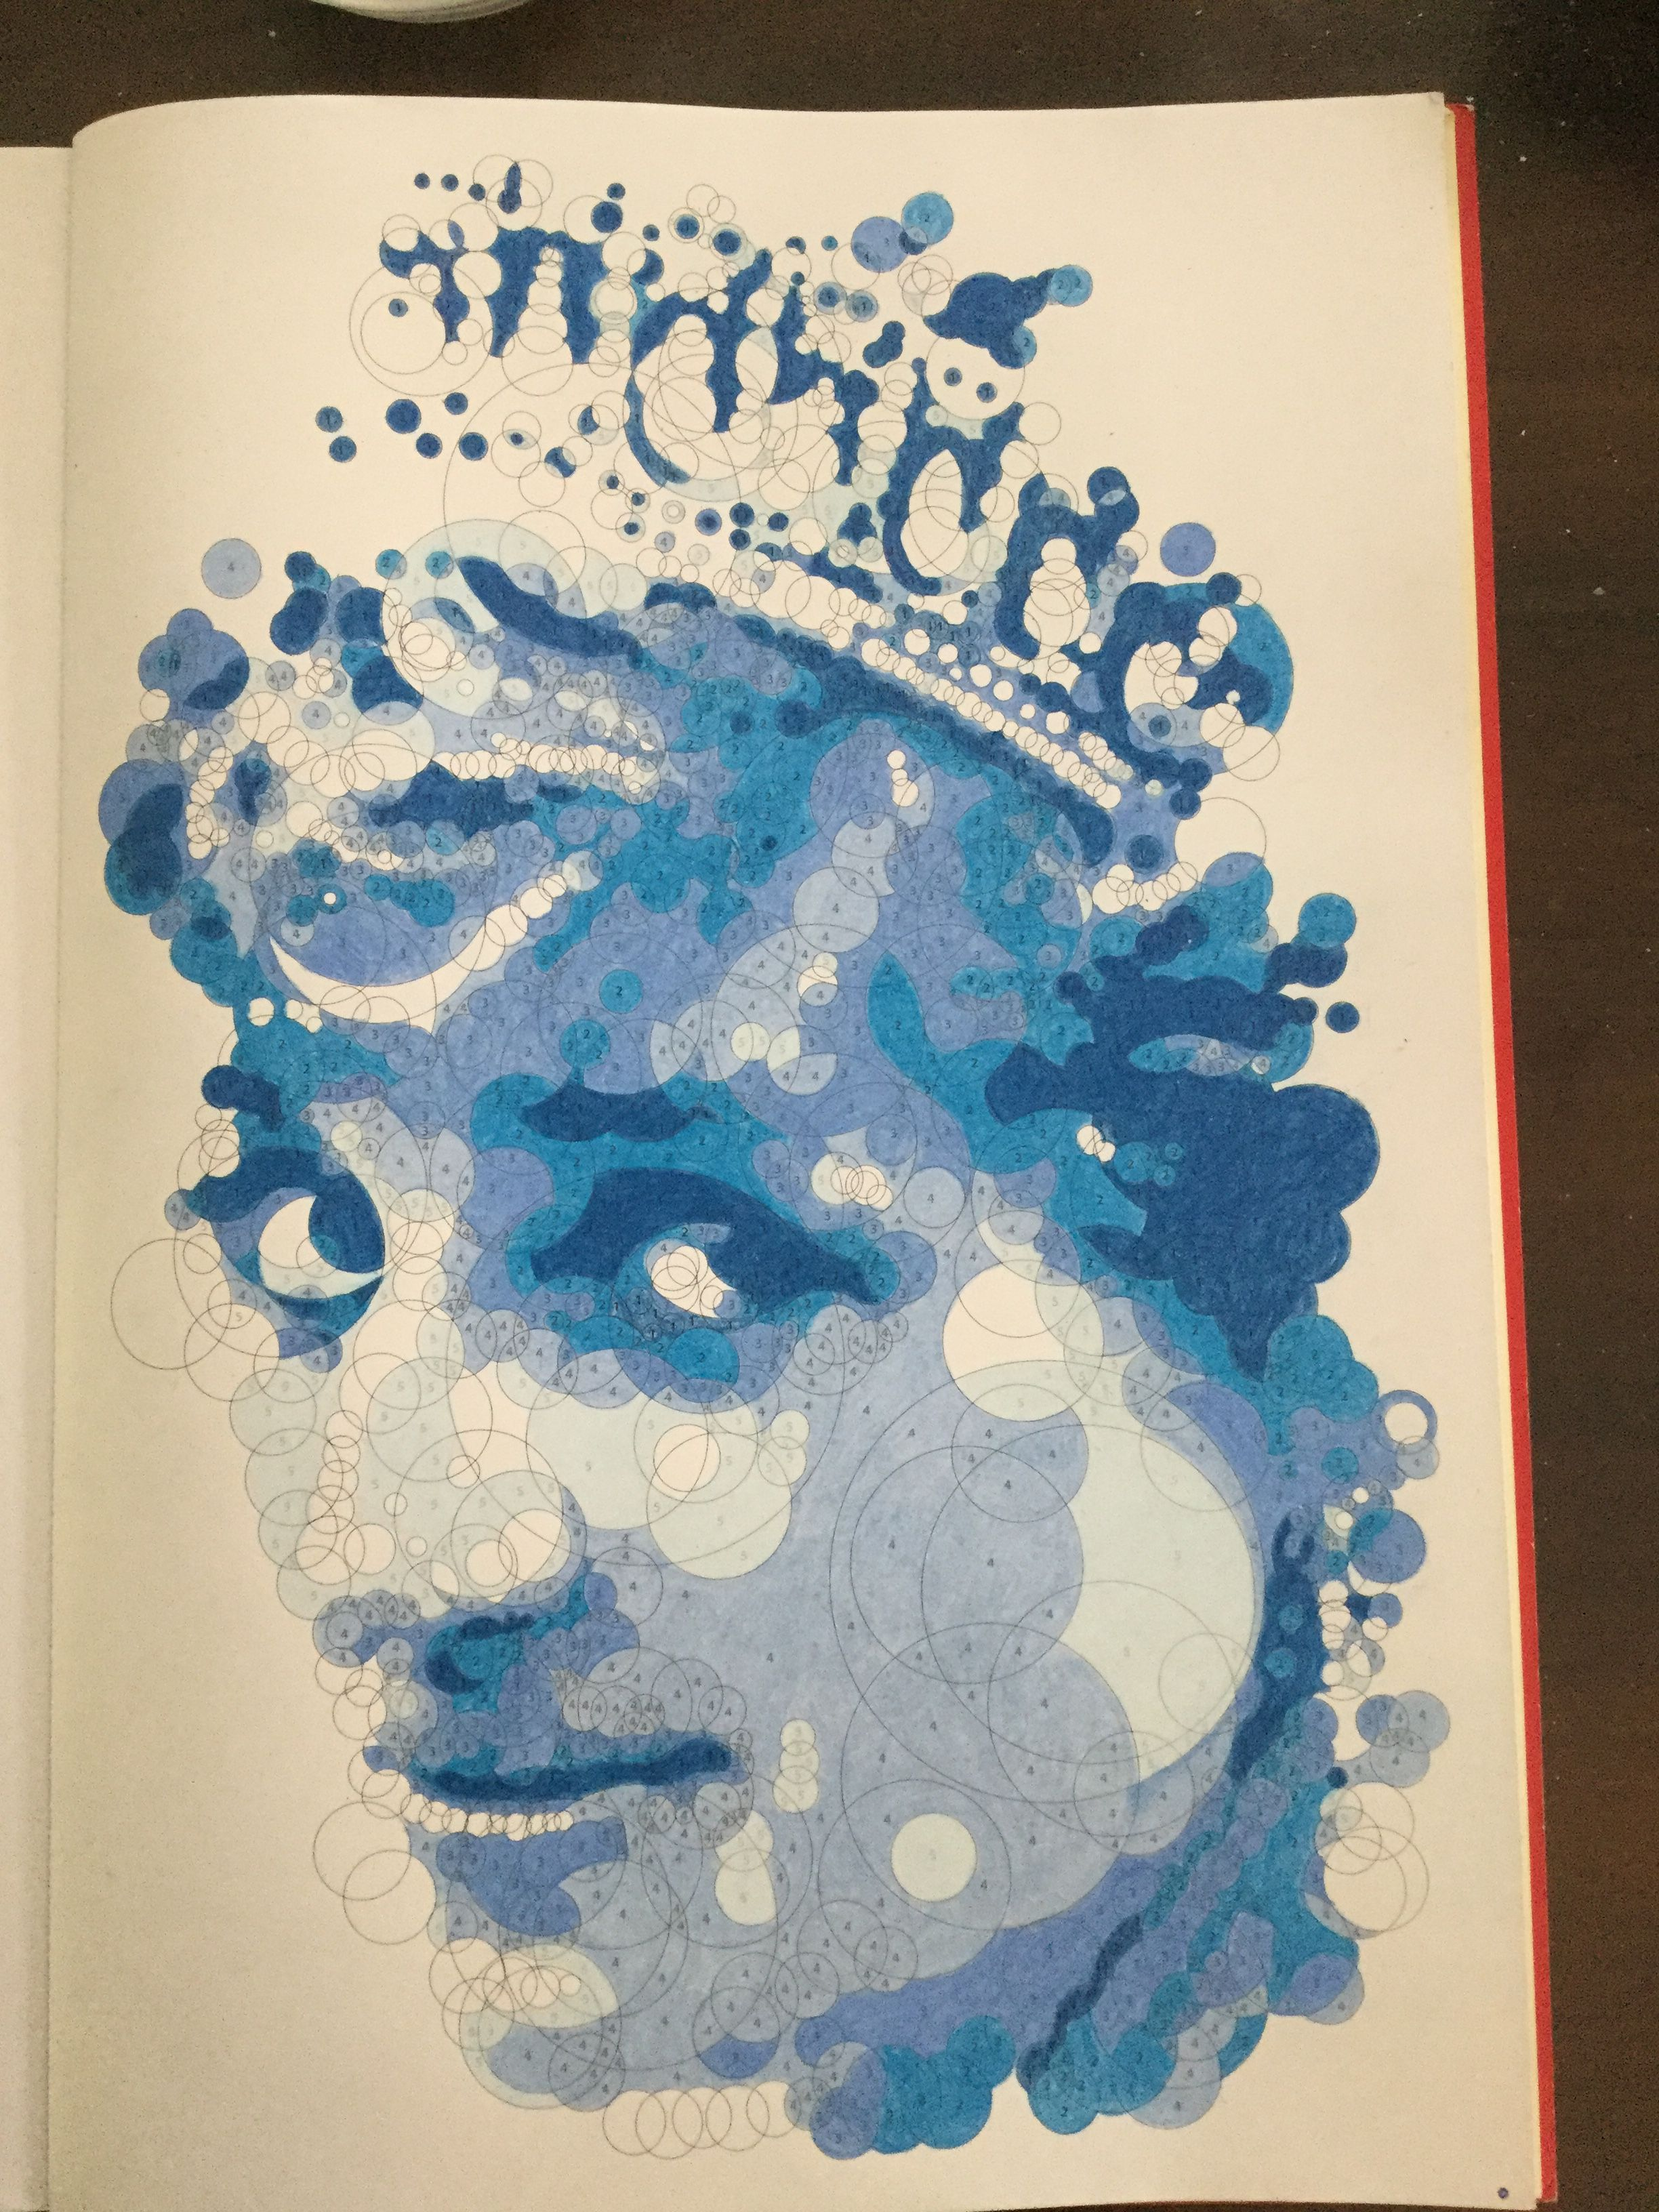 Another Querkles From The Book Querkles By Thomas Pavitte Querkle My Version Of Lady Di In Blue Art Coloring Books Artwork